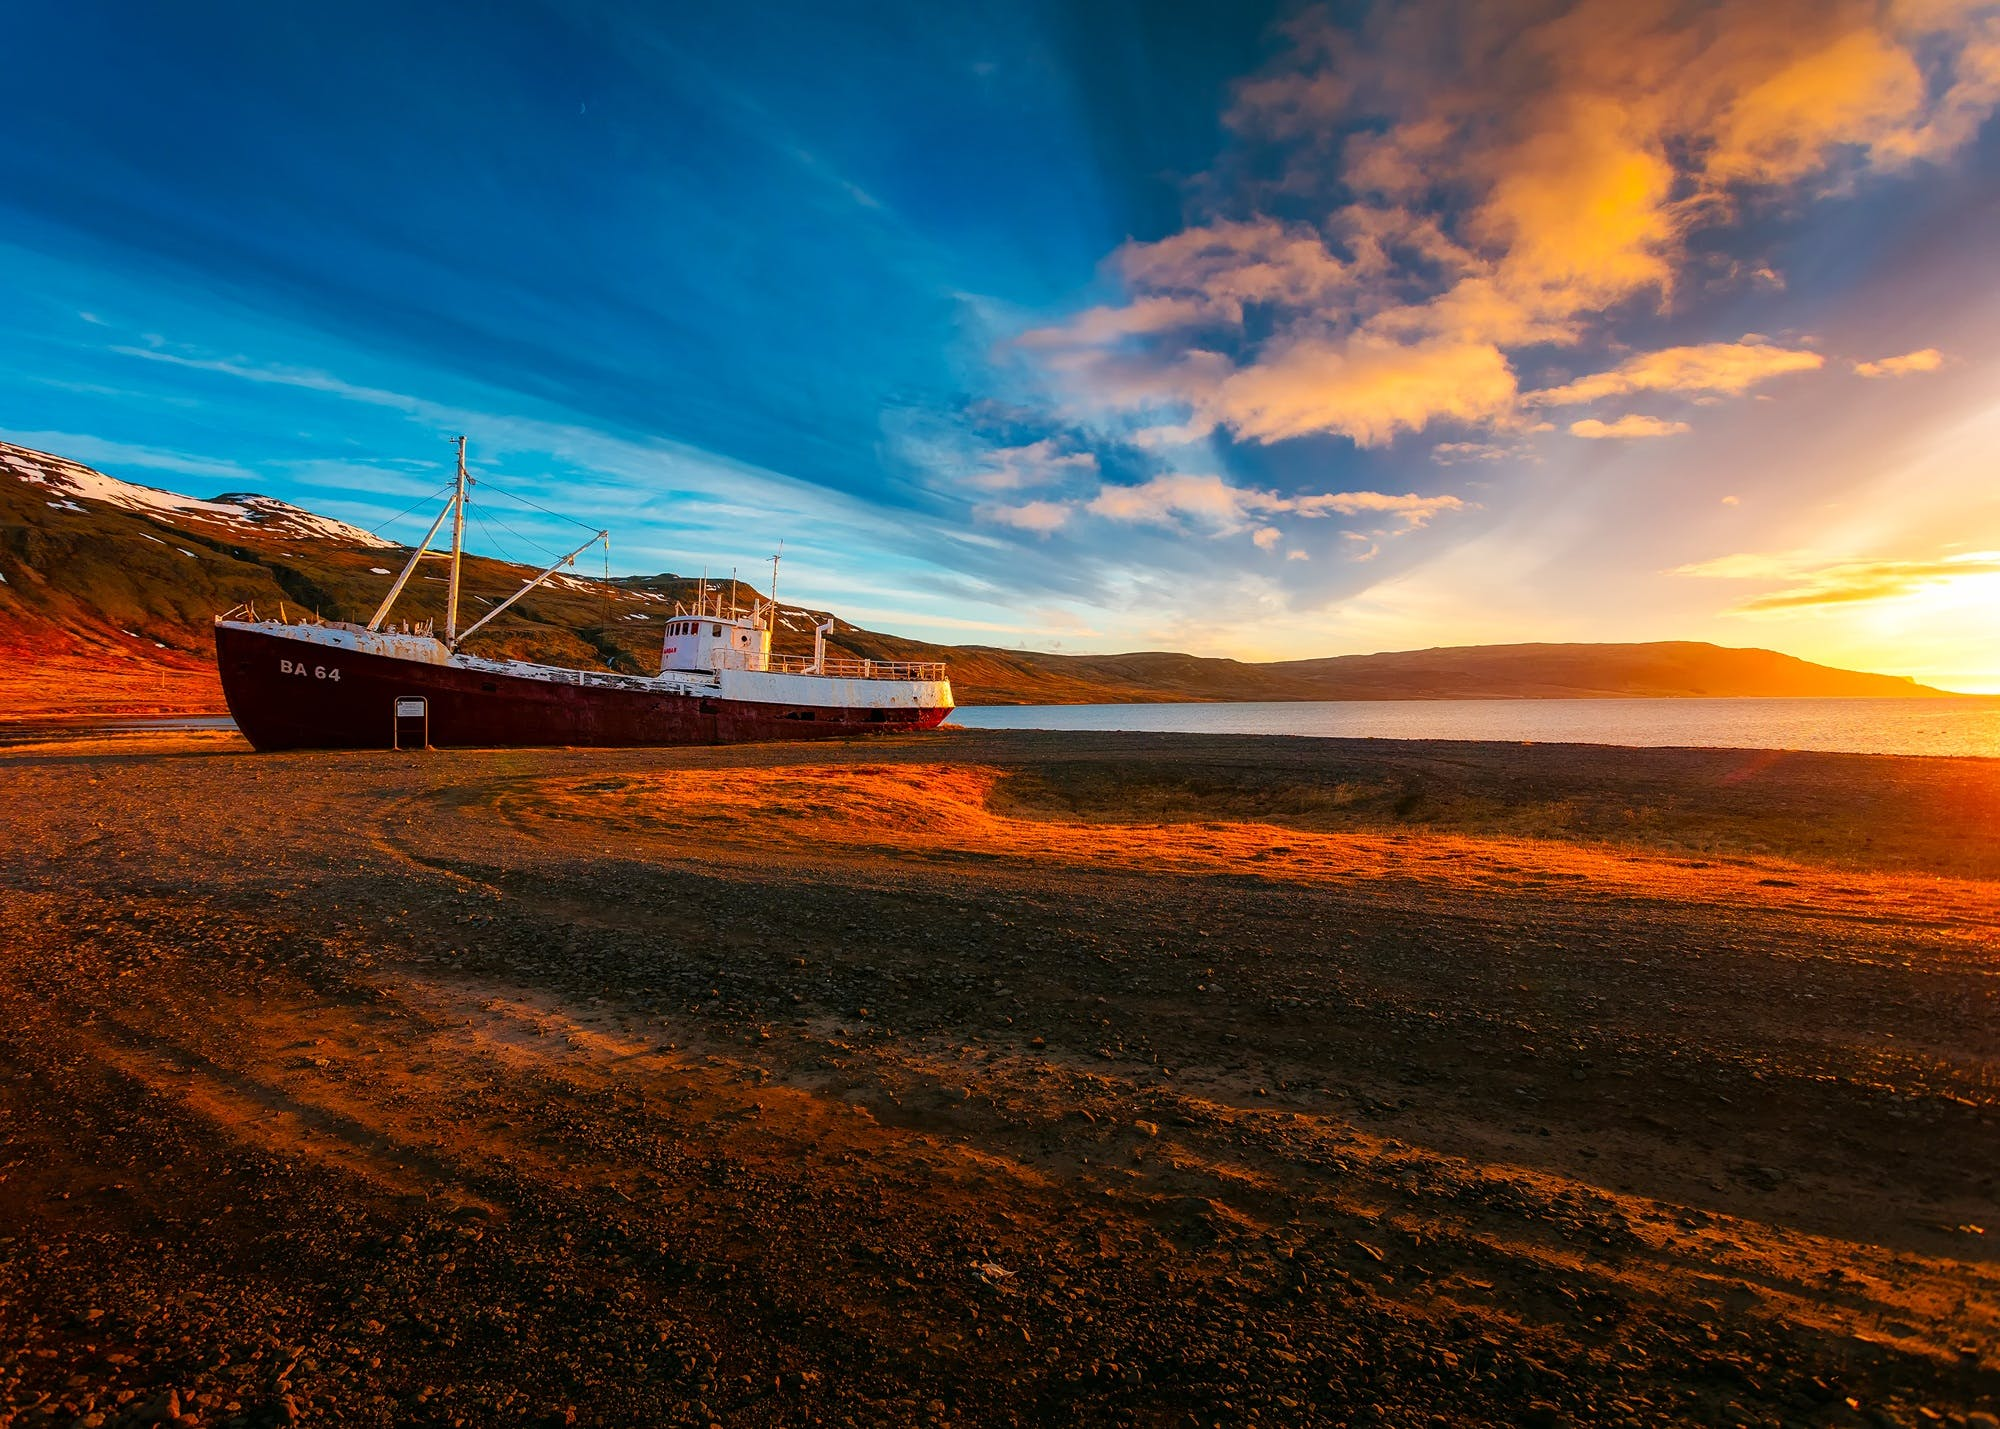 White and Maroon Cargo Ship on Sand